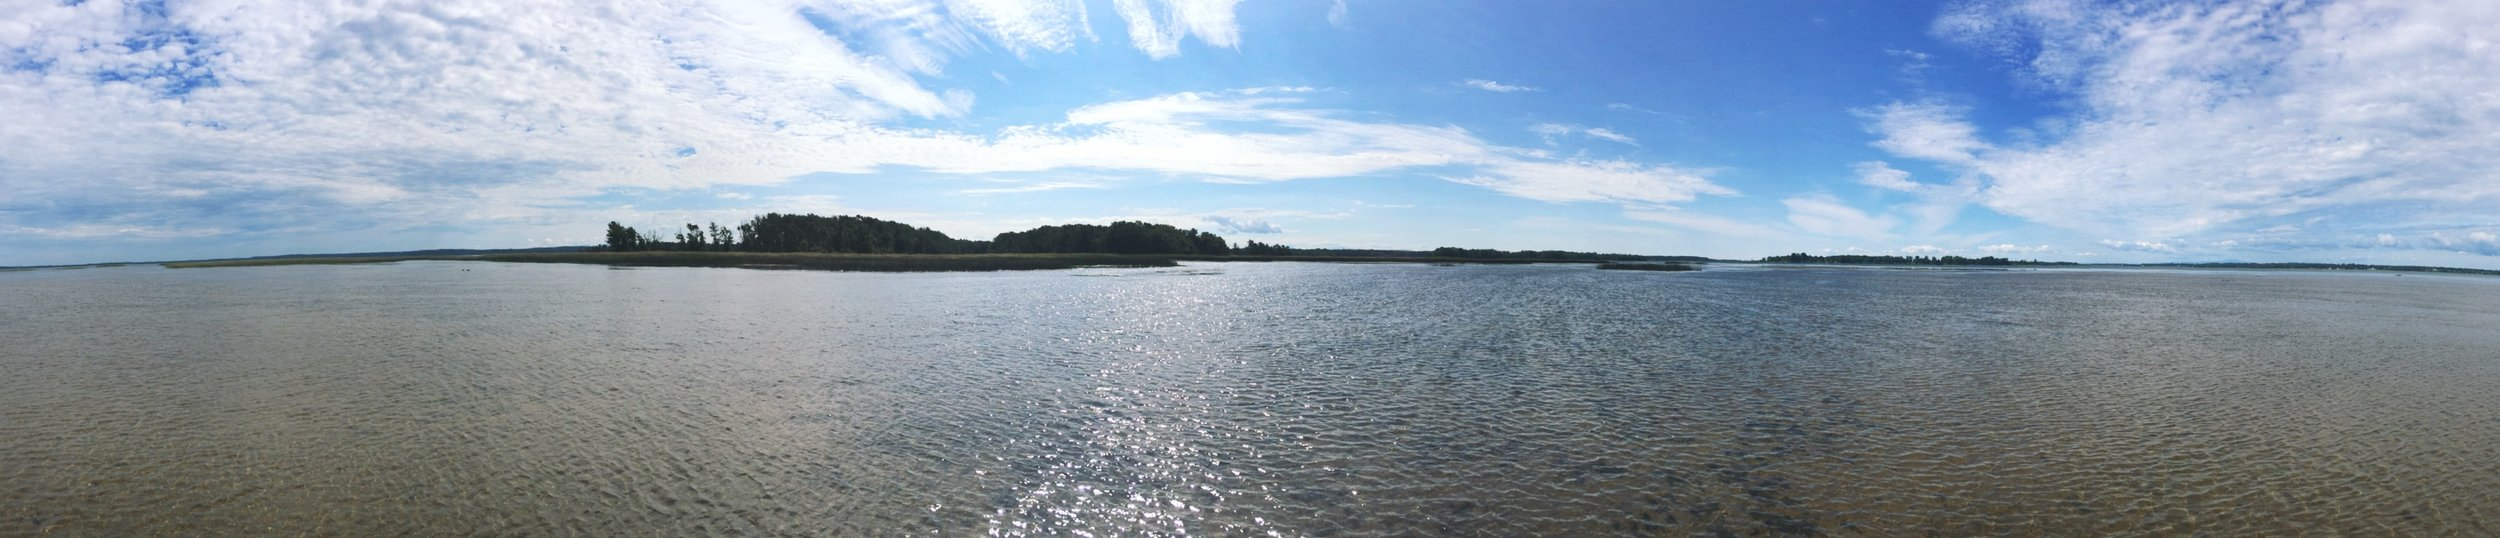 Long Marsh Bay and the entrance to the Missisquoi National Wildlife Refuge